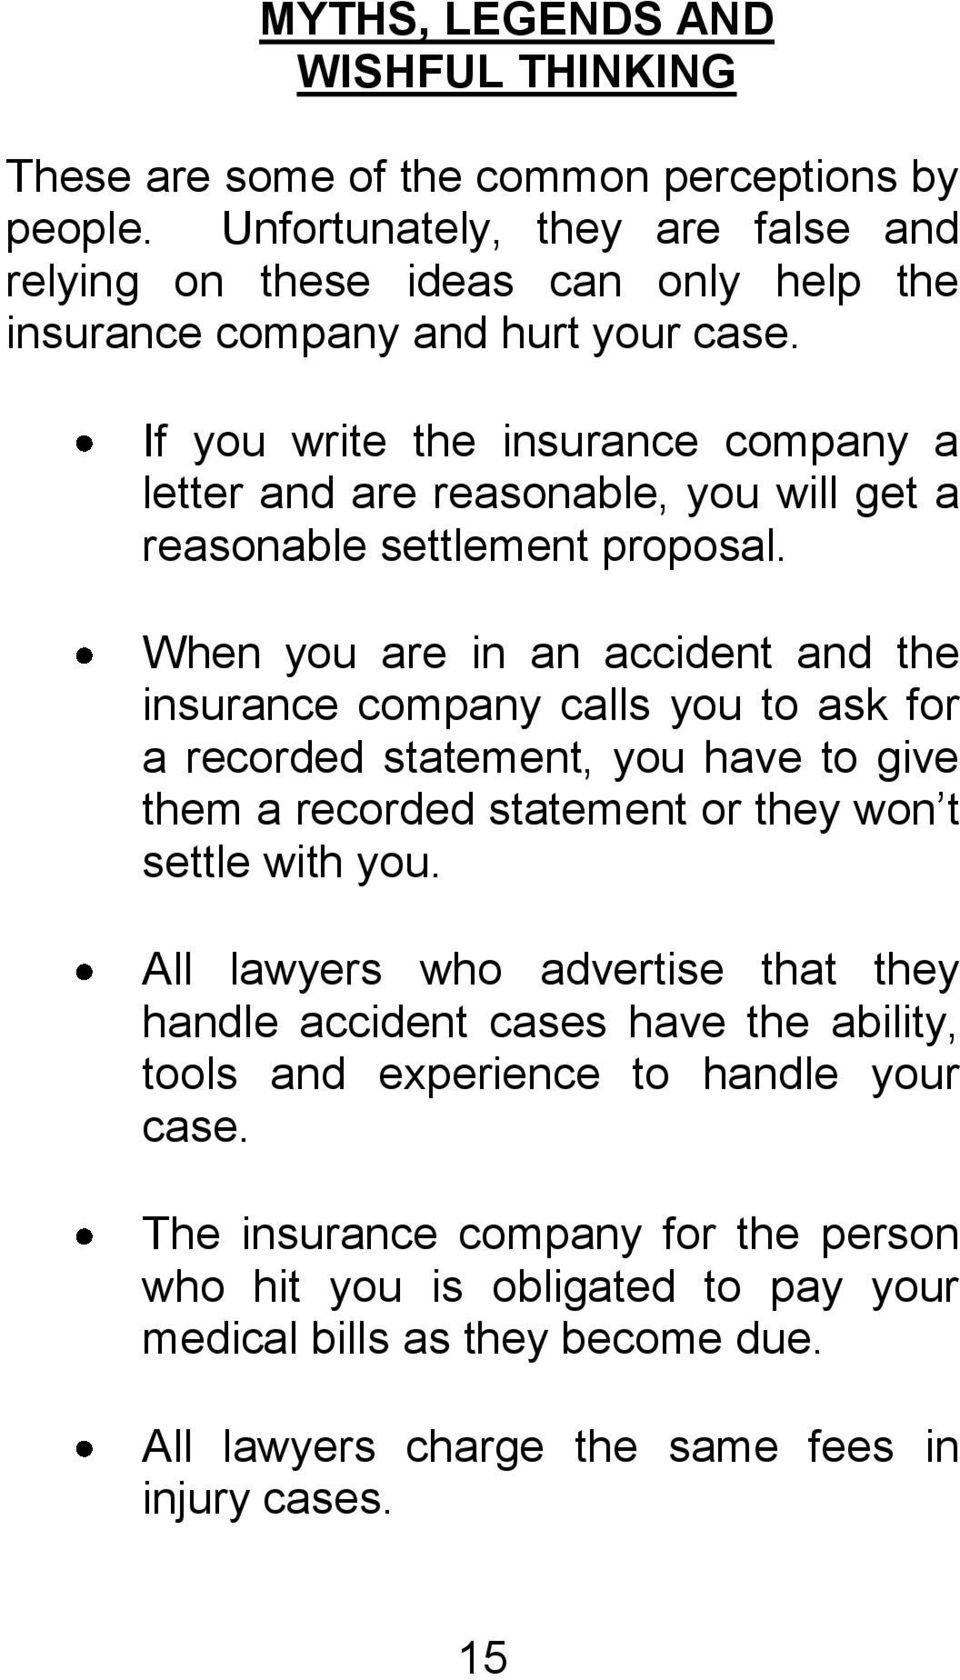 If you write the insurance company a letter and are reasonable, you will get a reasonable settlement proposal.